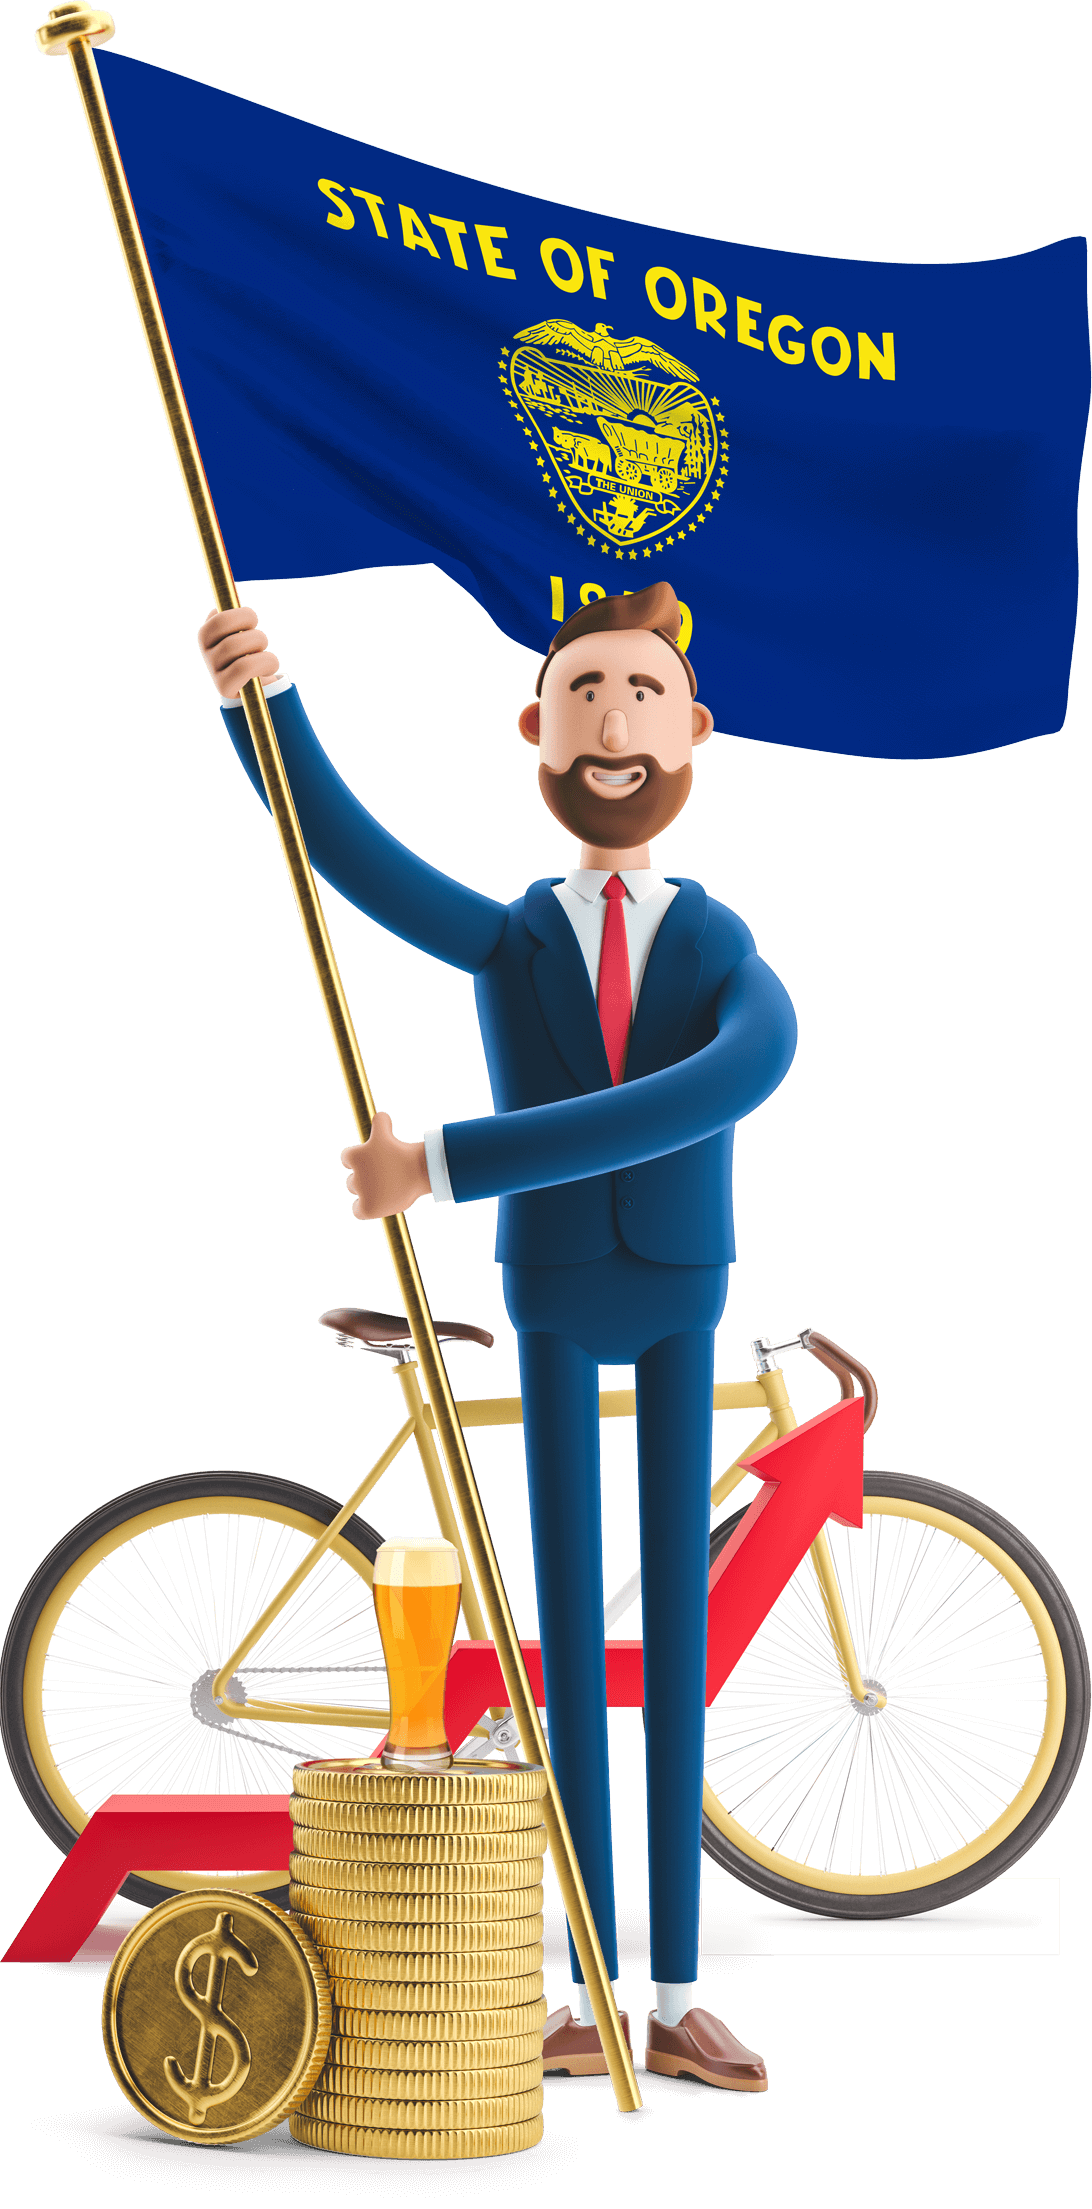 Oregon flag held by MetCredit USA businessman who's standing in front of a bicycle with a craft beer on a stack of oversized coins beside him